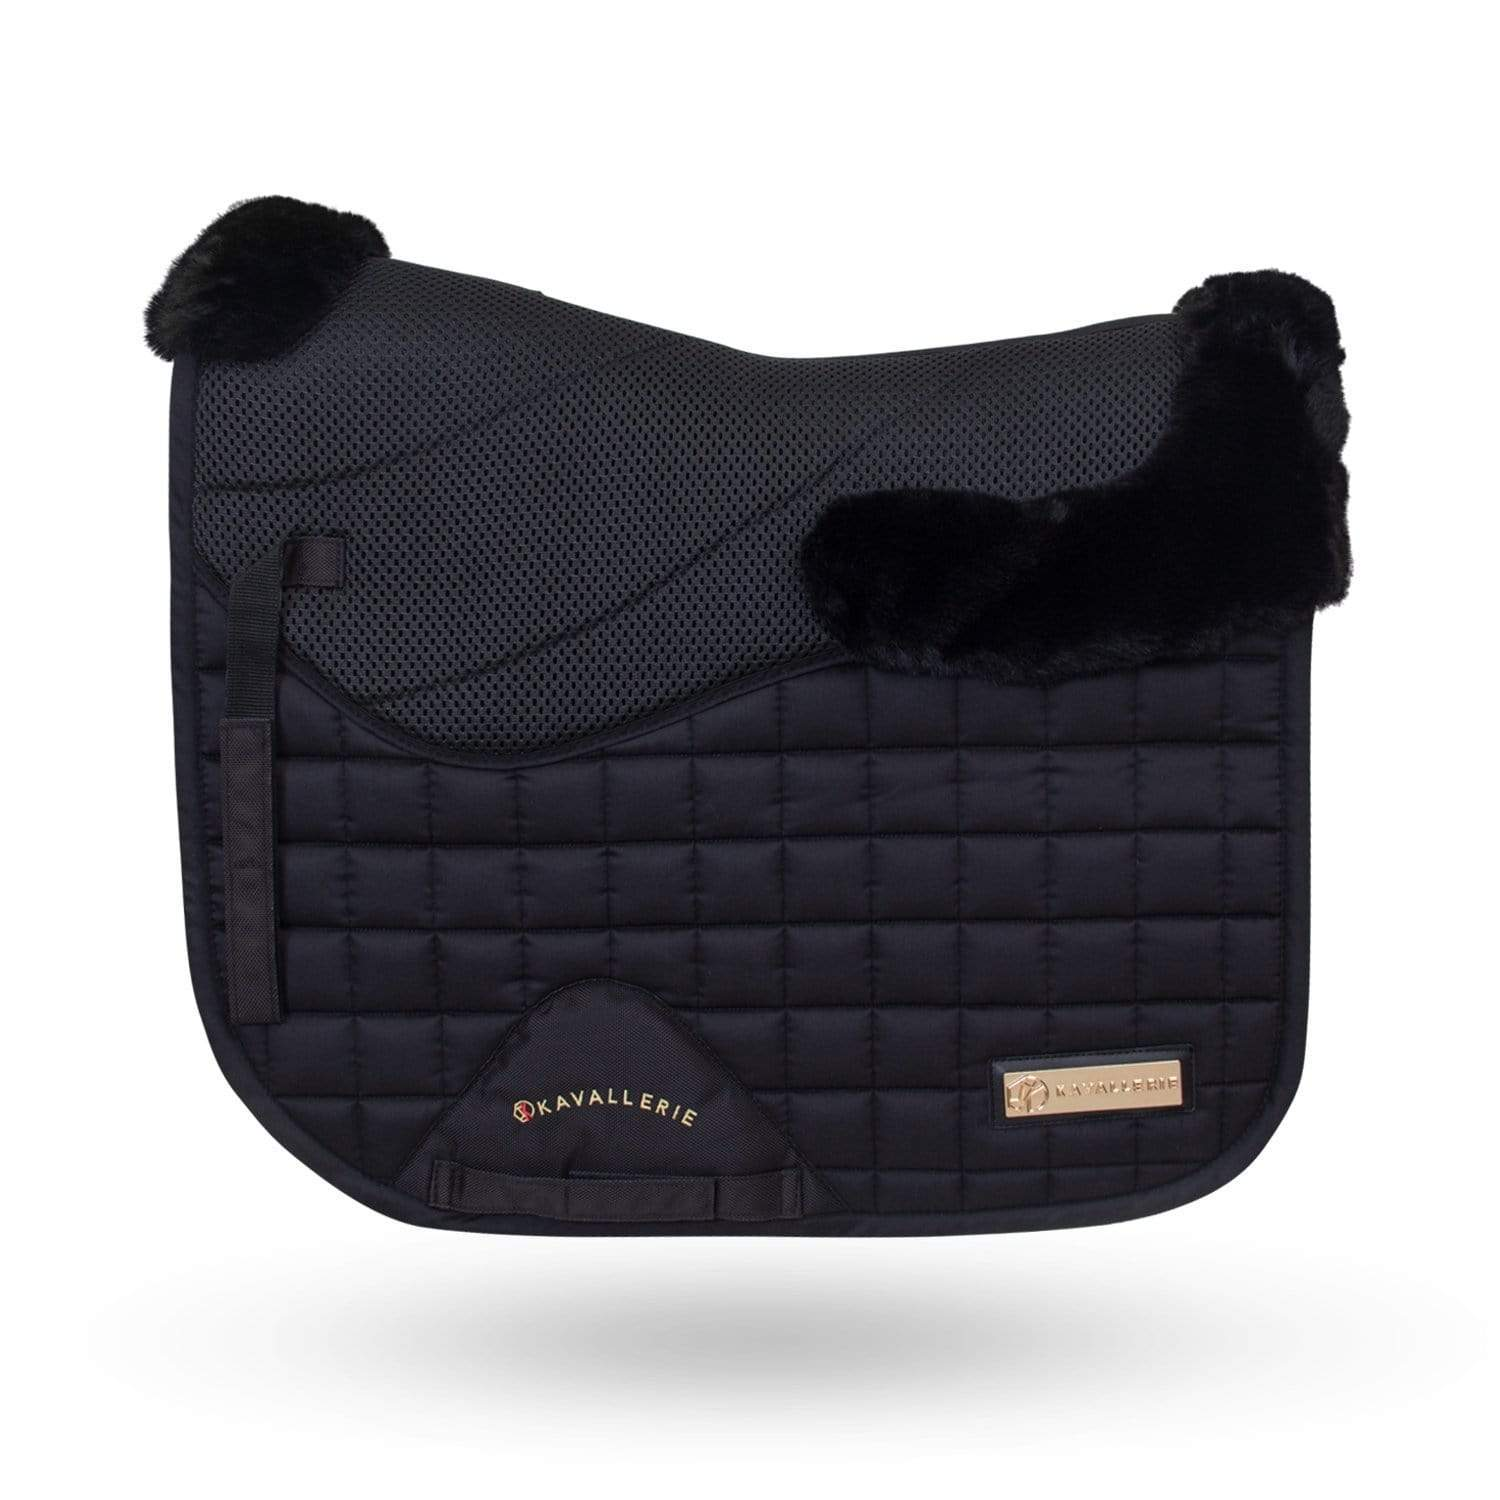 Full 3D Mesh with Fur Saddle Pad - Kavallerie